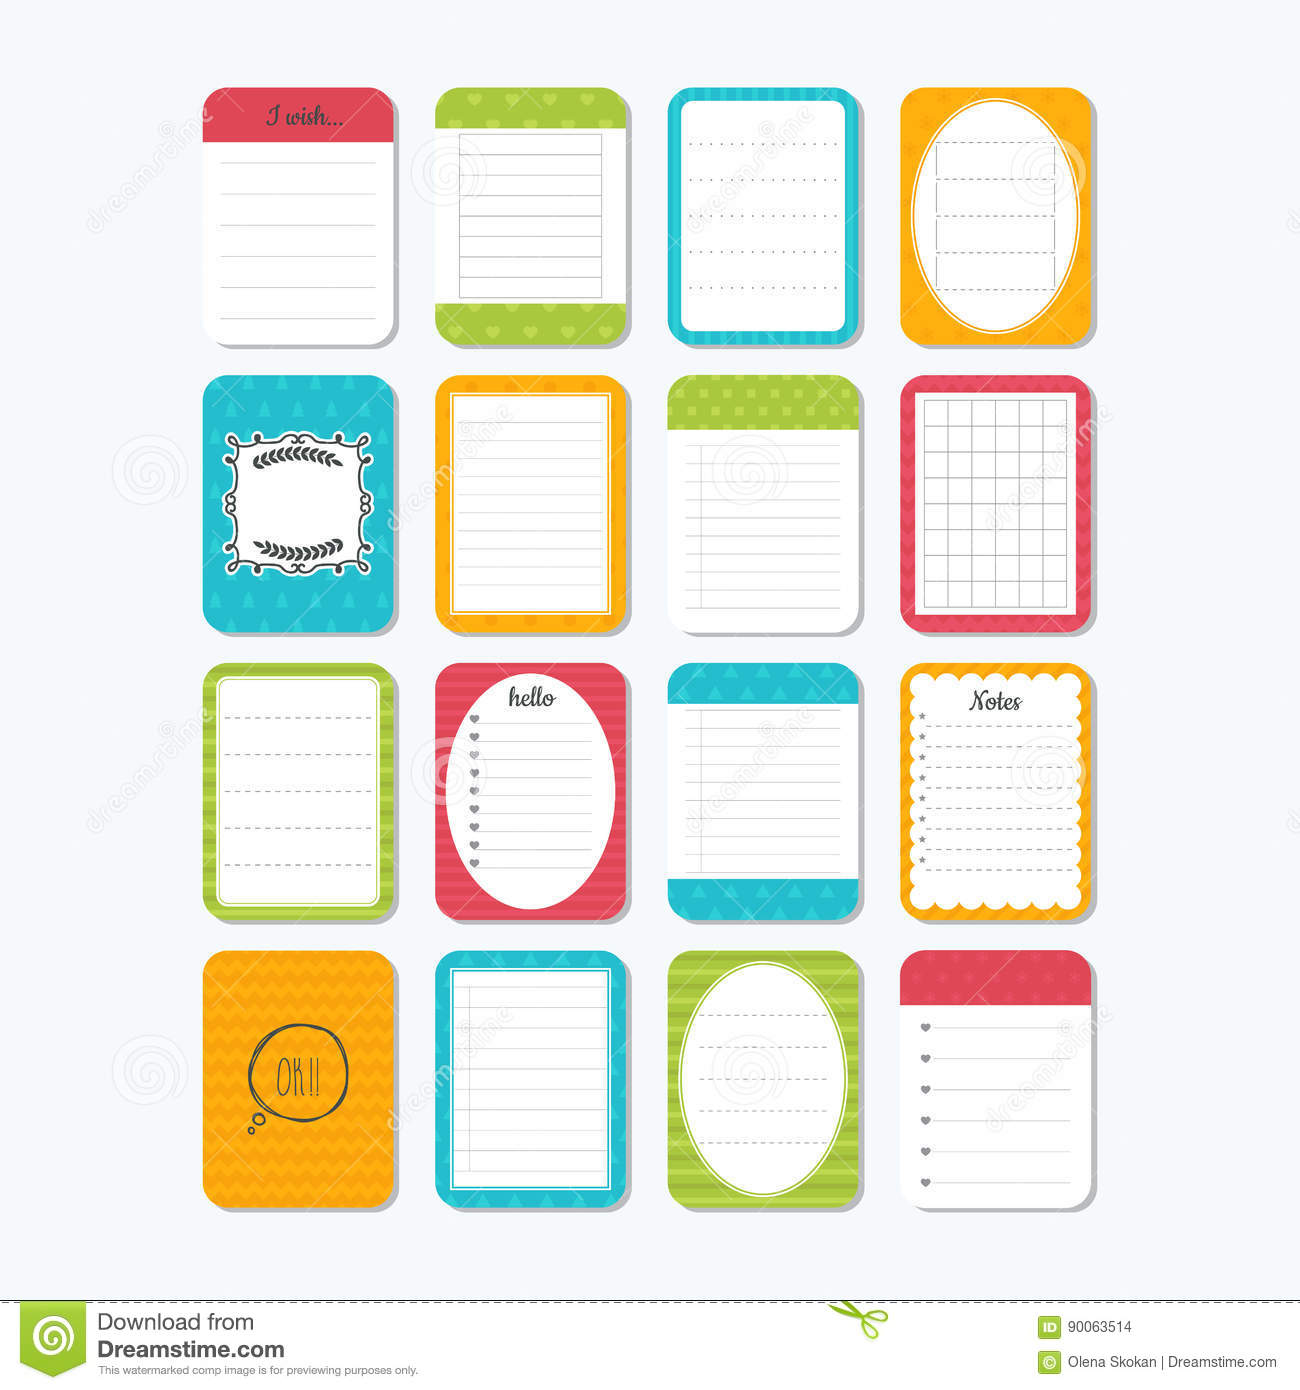 template for notebooks. notes, labels, stickers. collection of